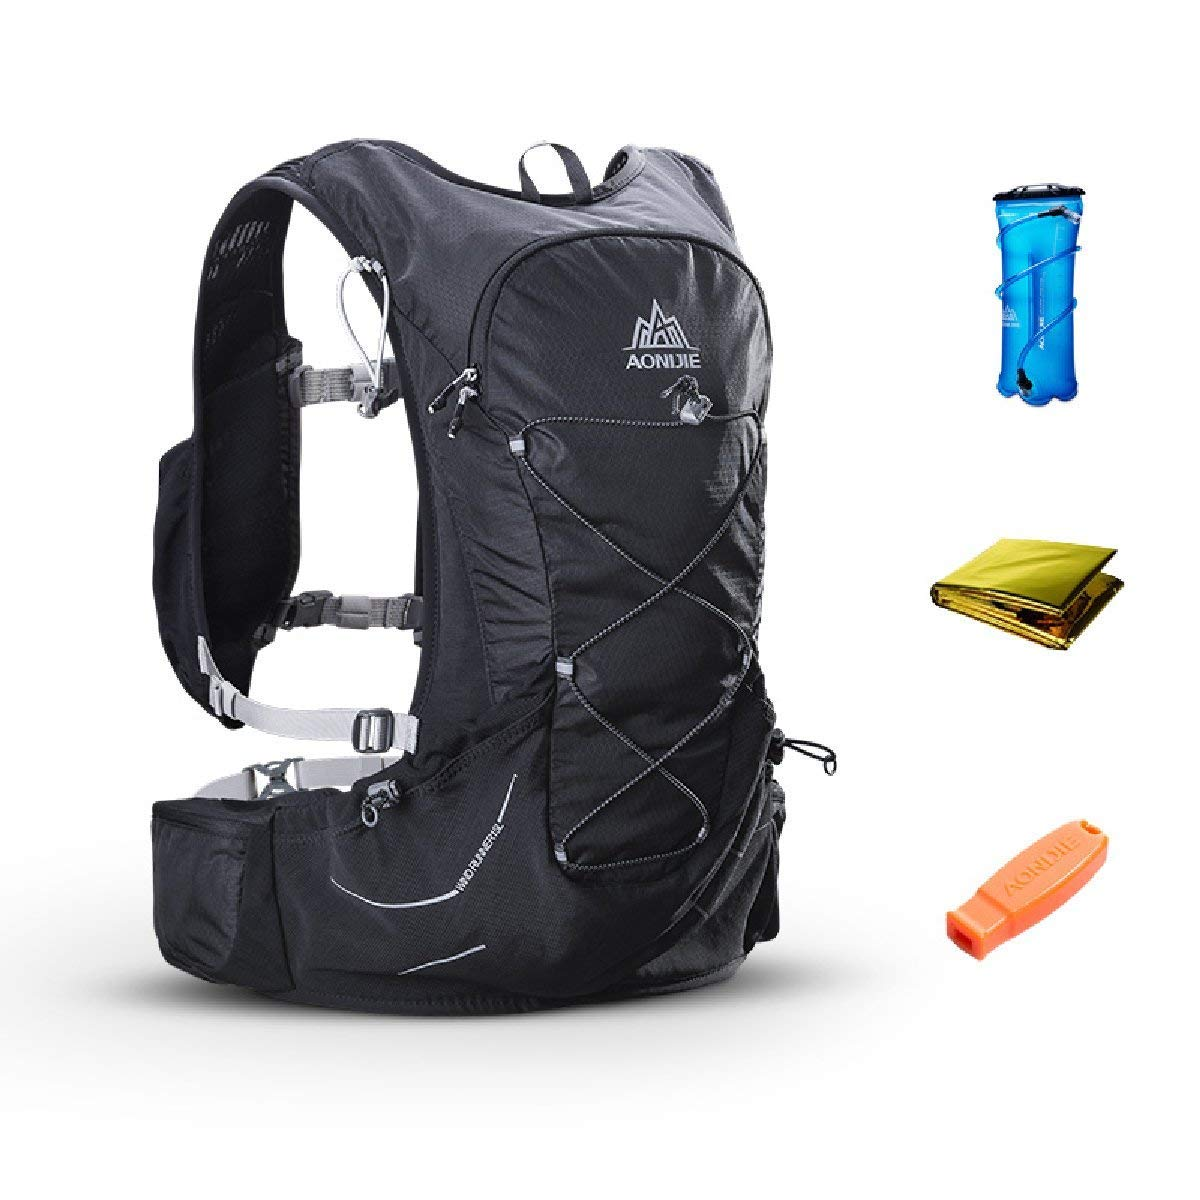 8798d9cdbb AONIJIE 15L Outdoor Hydration Pack Ultra Trail Lightweight Running Vest  Marathon Backpack with 3L Water Bladder, First Aid Blanket, Whistle for  Survival